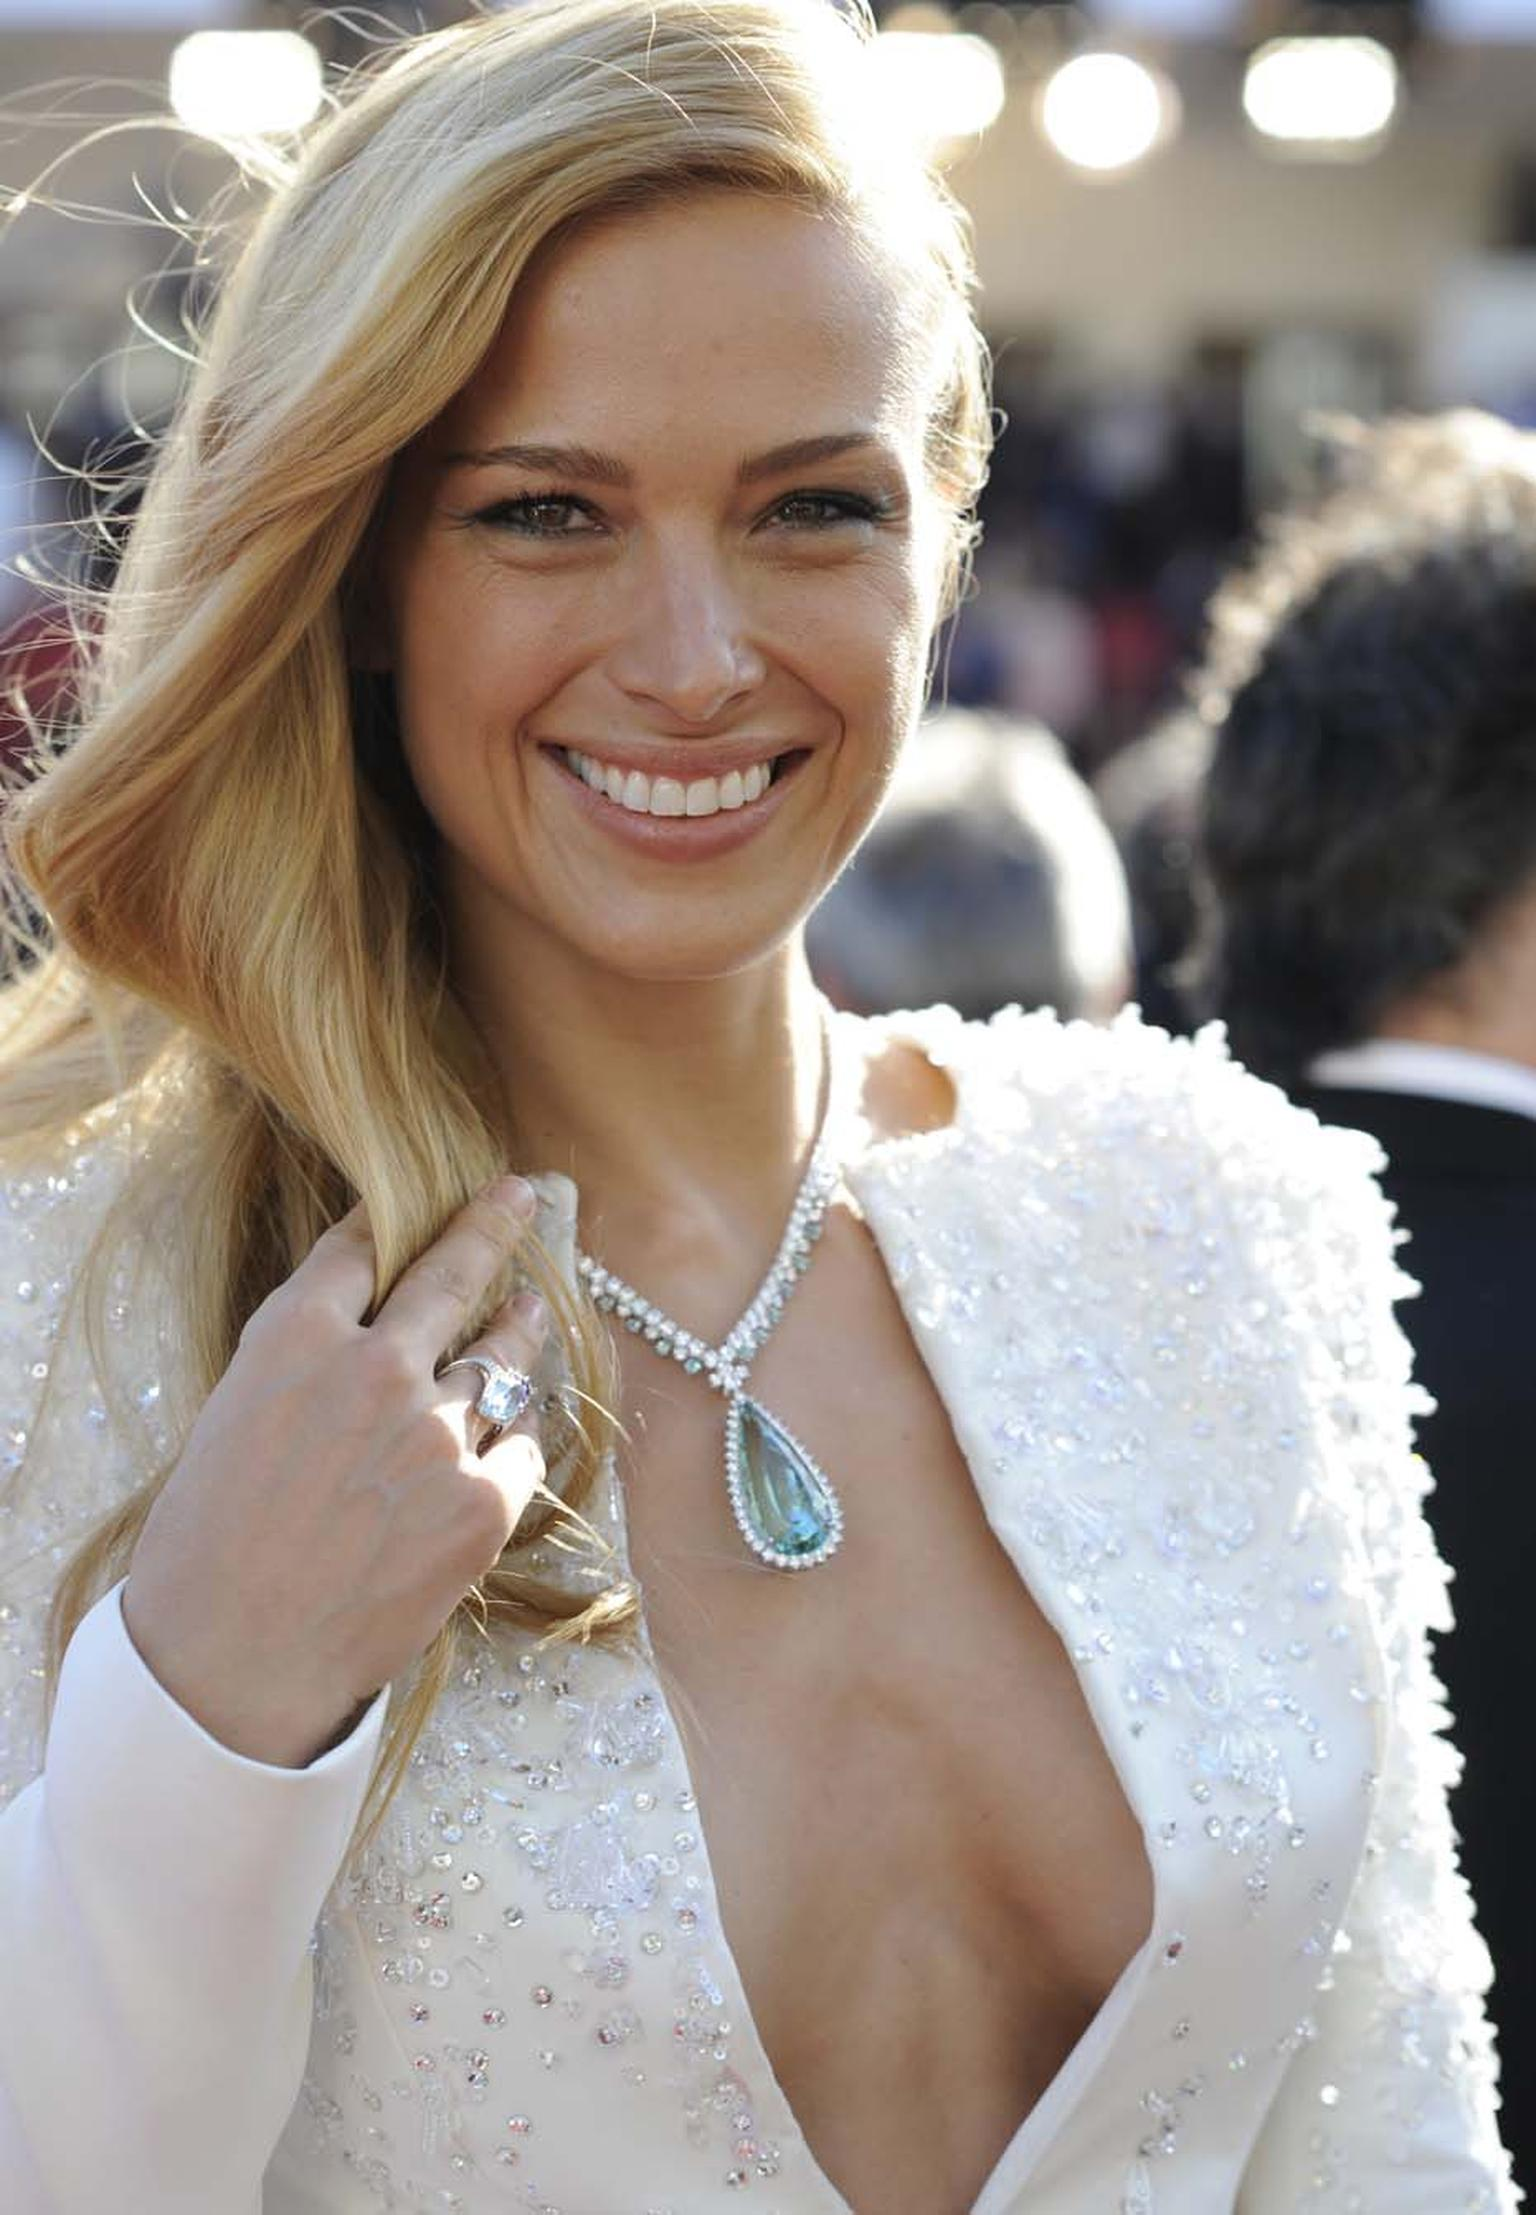 Chopard Ambassadress Petra Nemcova chose a green beryl and diamond high jewellery necklace from the Maison's Red Carpet collection, and a coloured gemstone ring from the Temptations collection, to contrast her all-white Zuhair Murad jacket and skirt combo